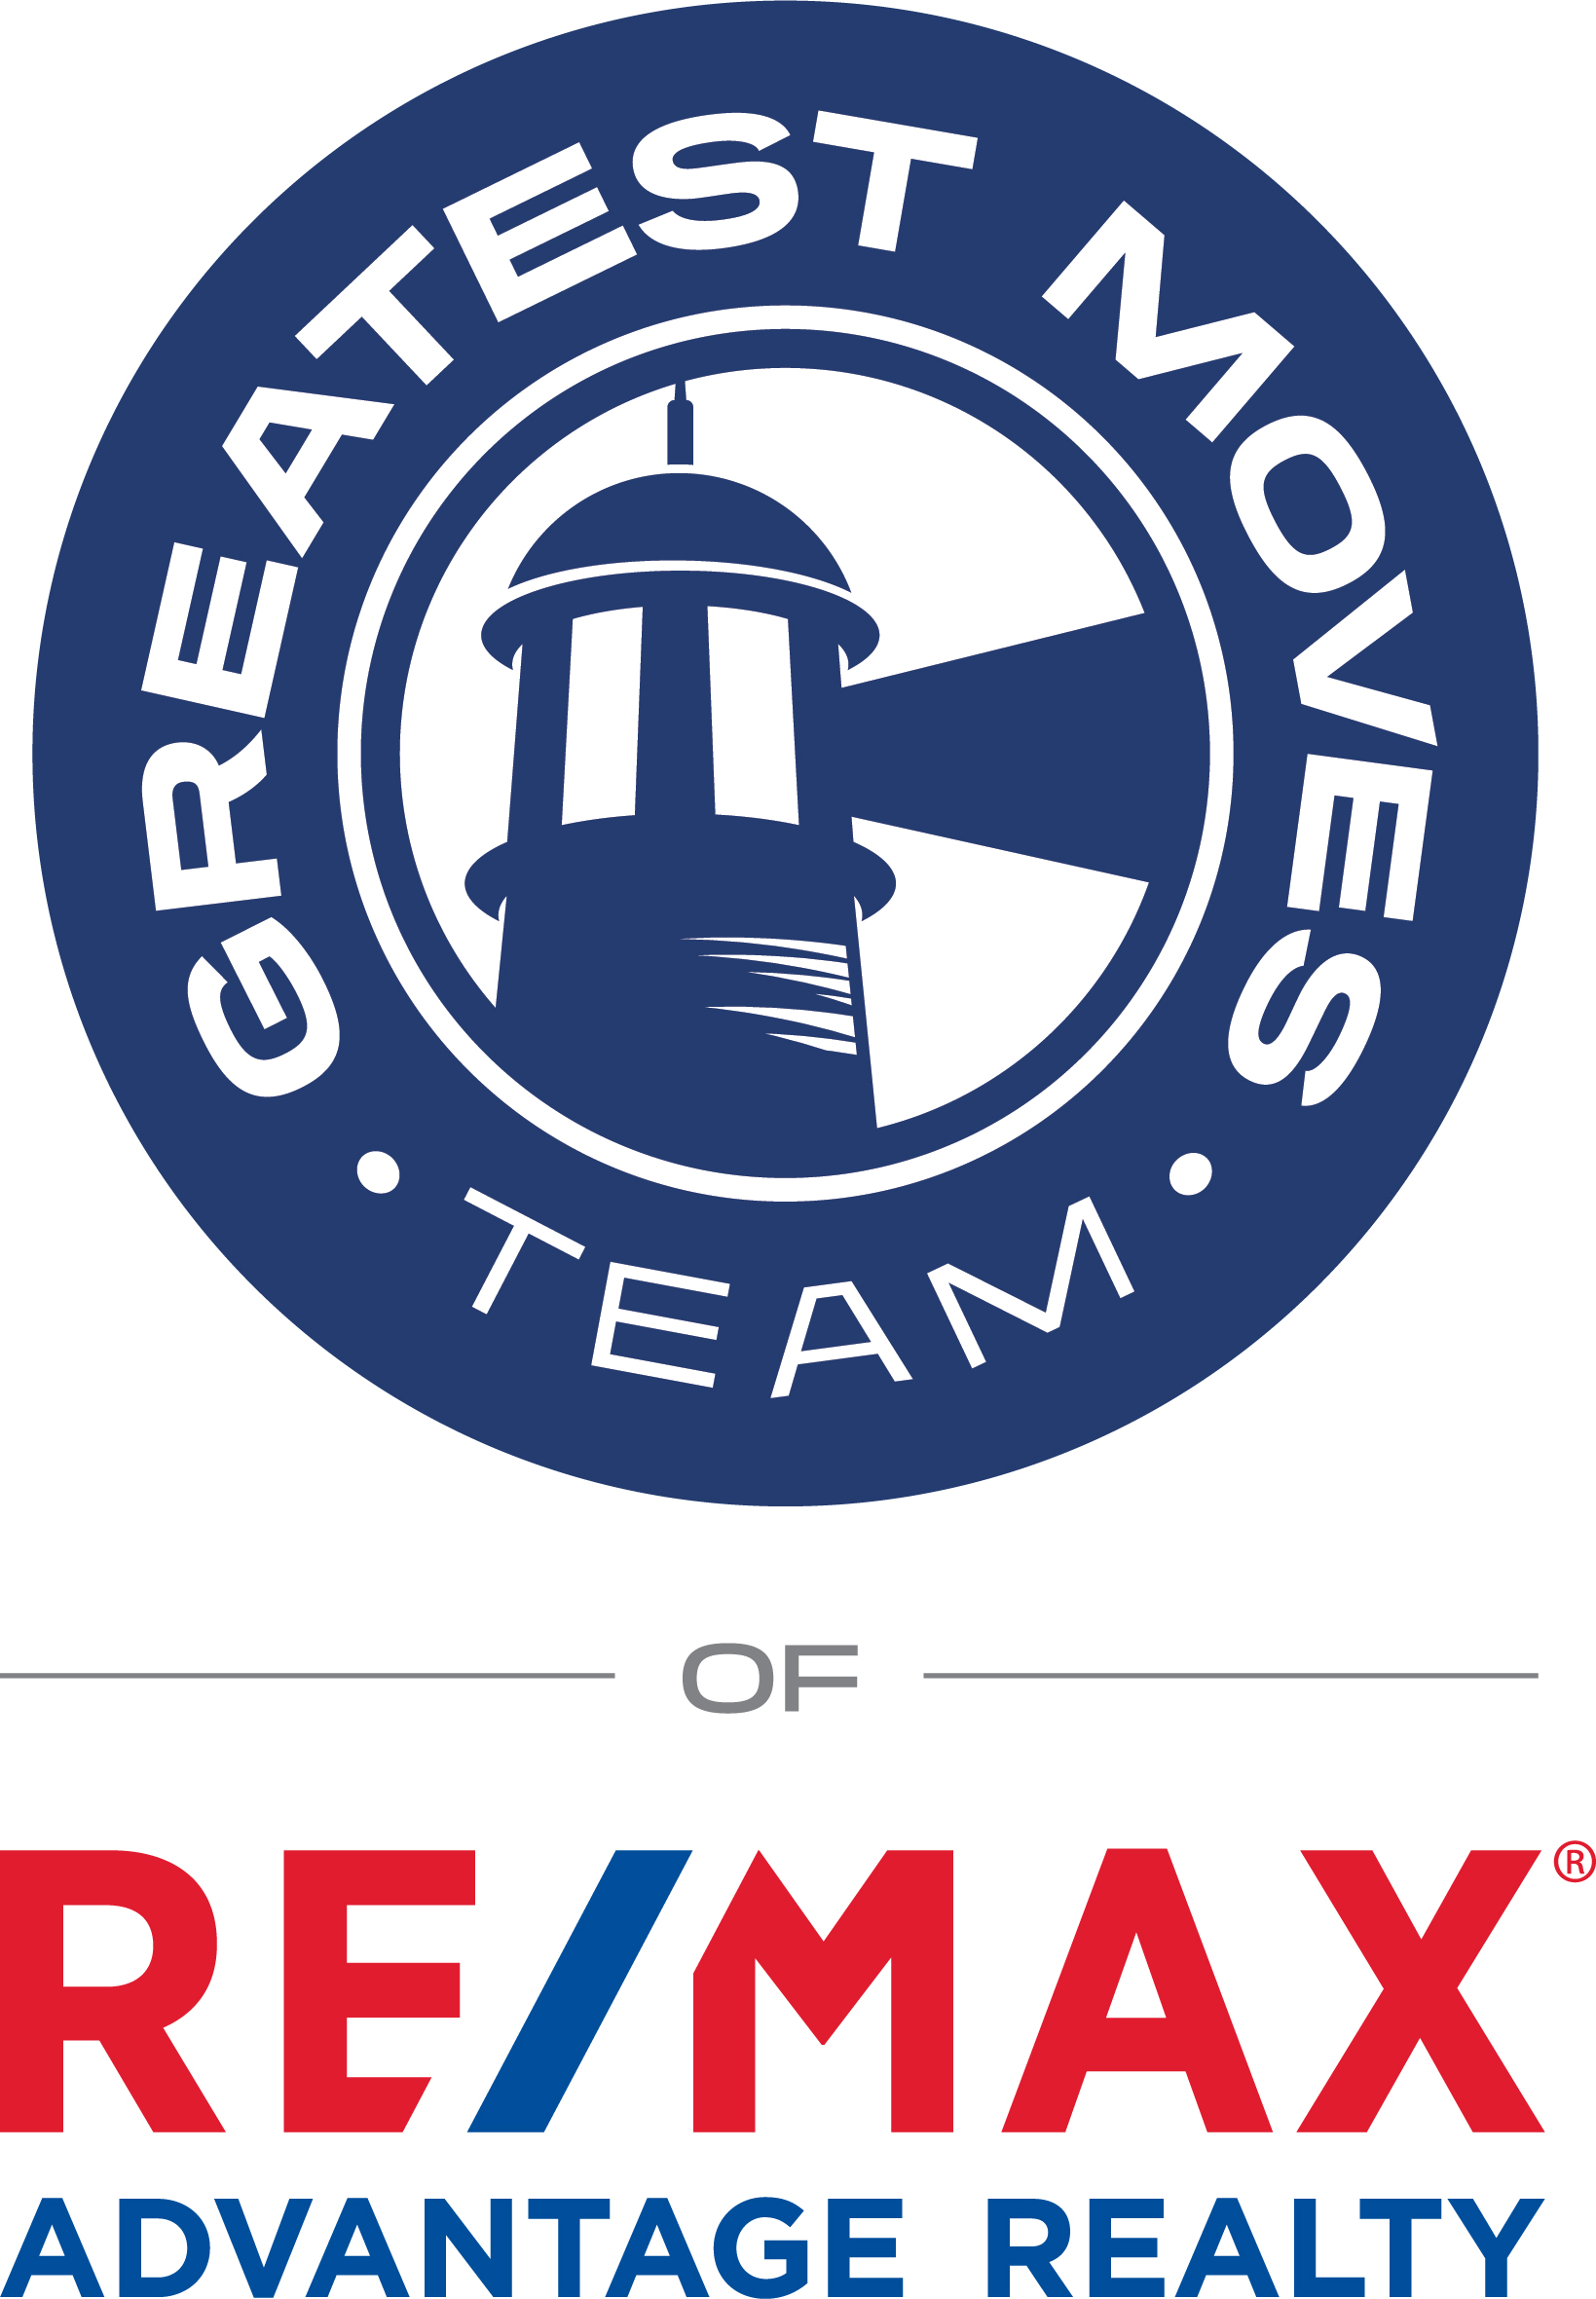 The Greatest Moves Team of RE/MAX Advantage Realty logo